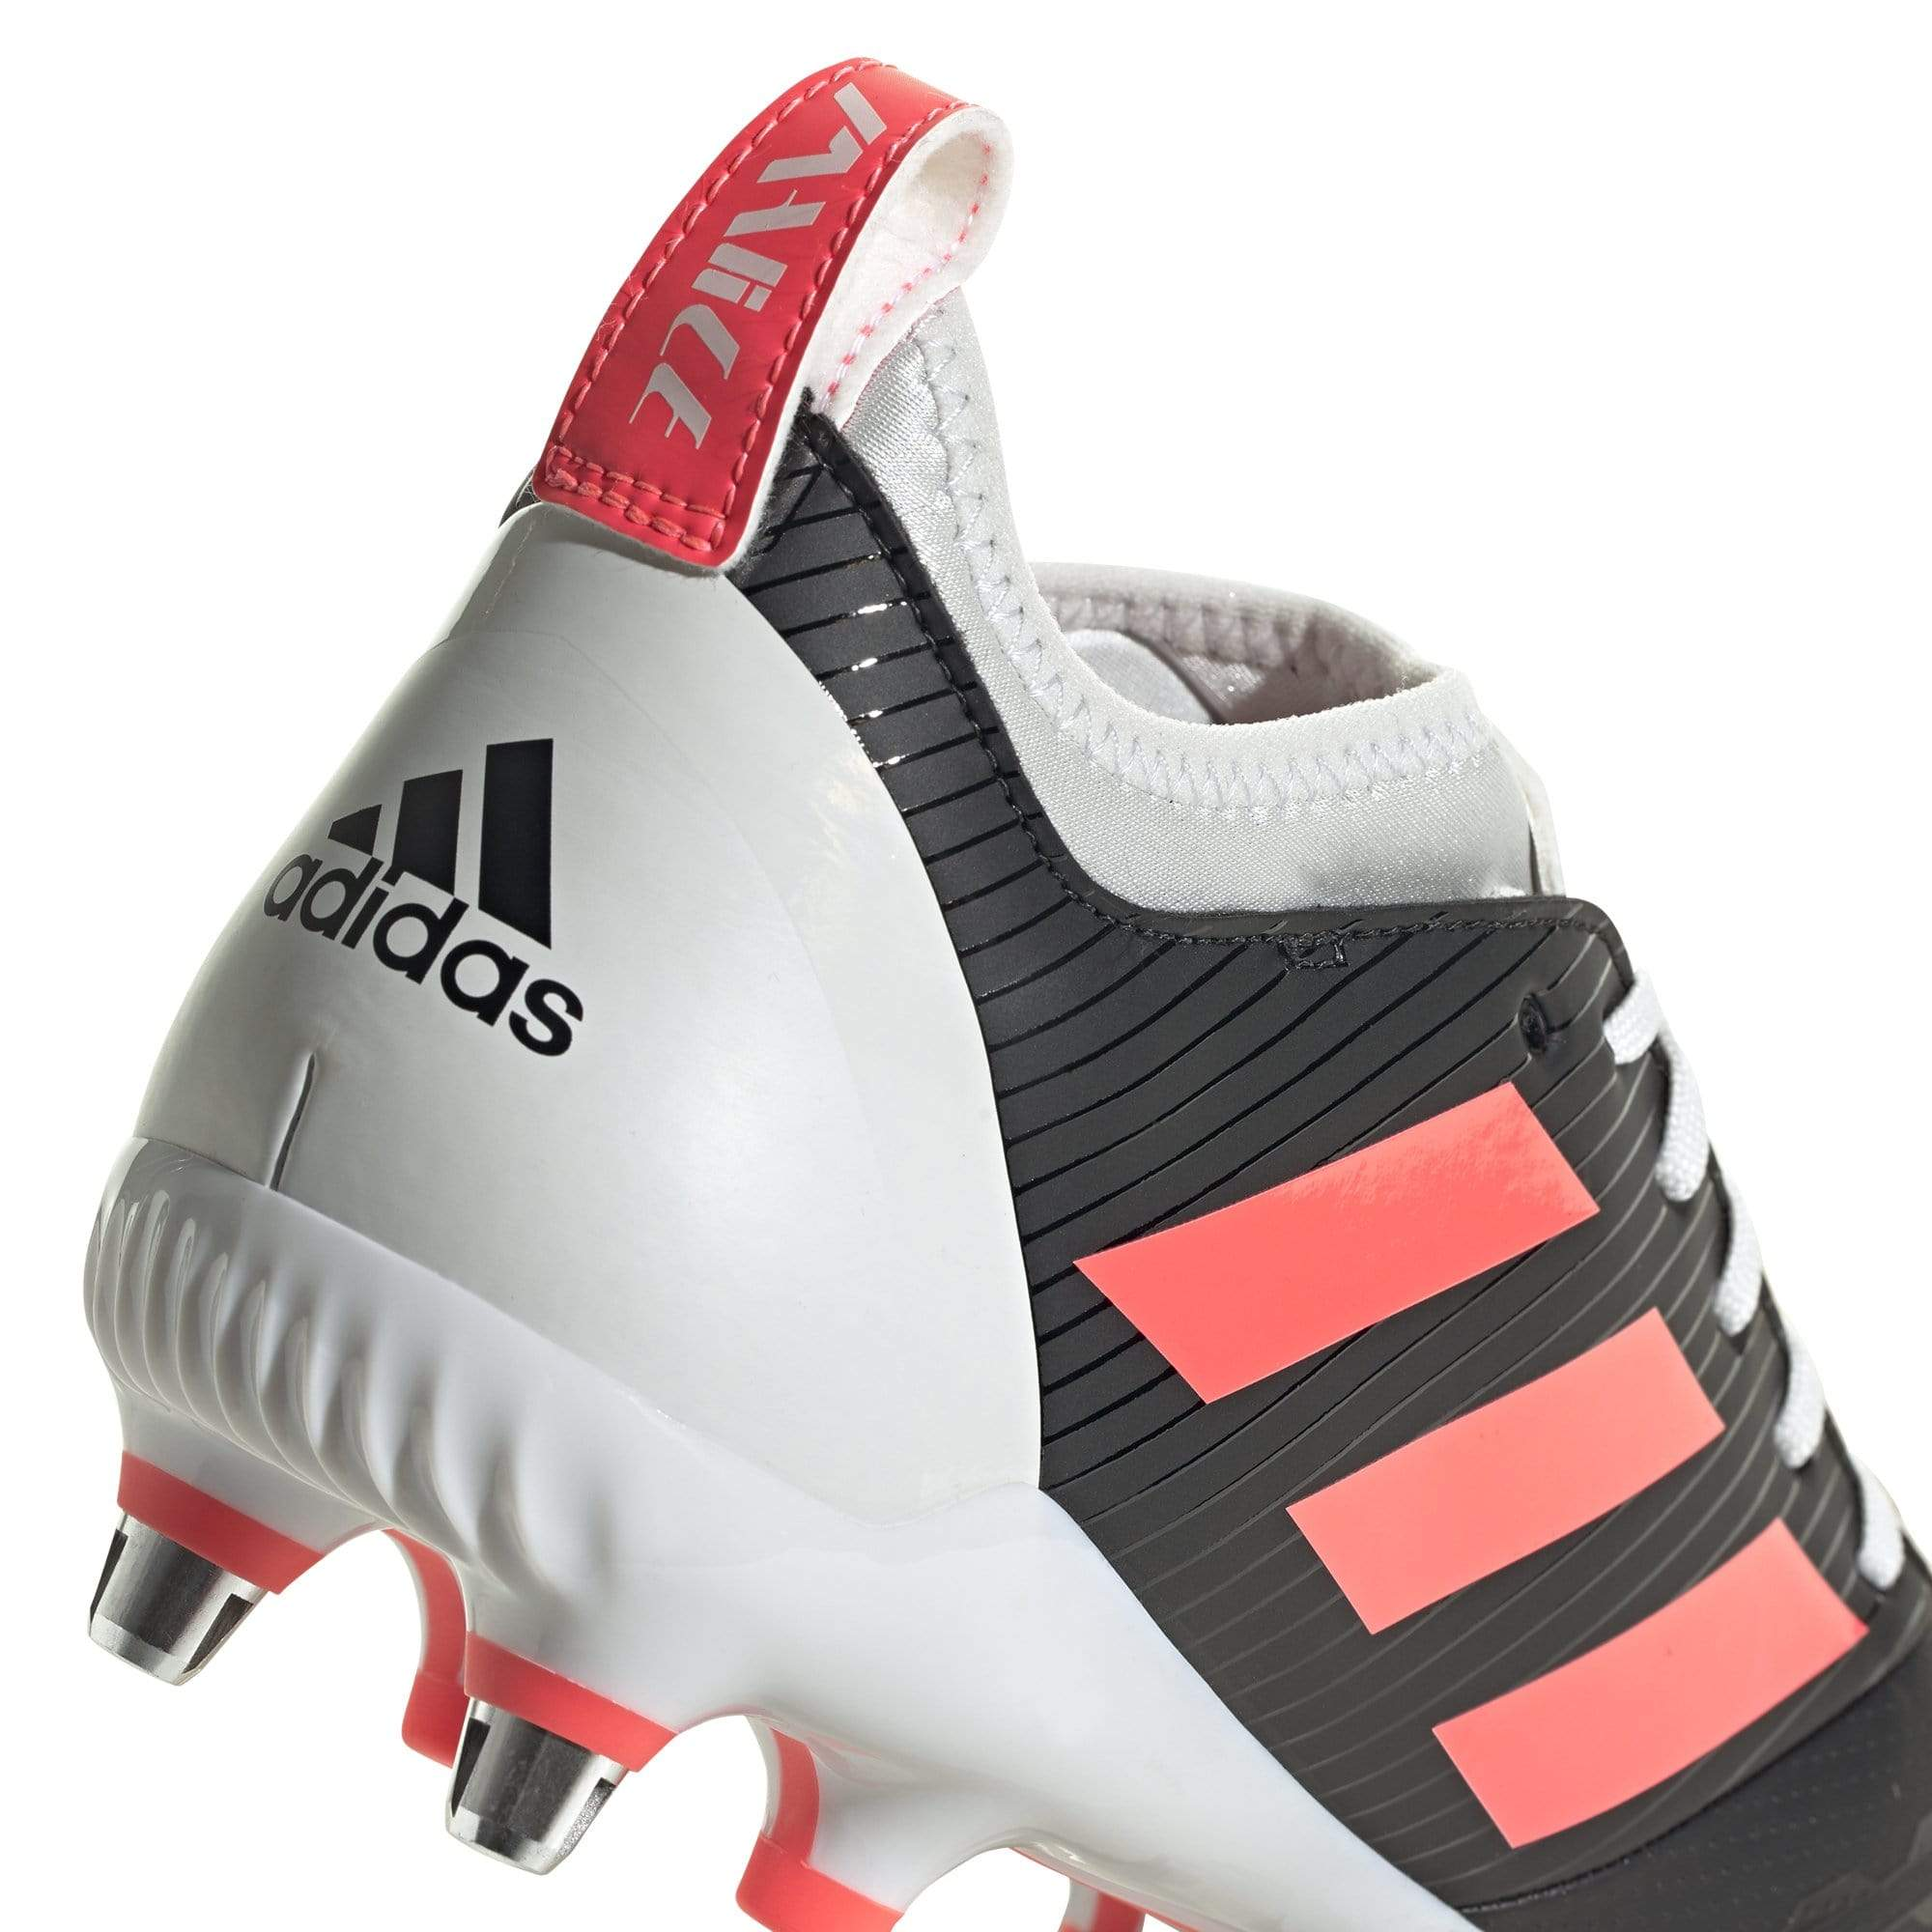 Alternate View of Back of Rugby Boot White Back, Black Side, Pink Stripes